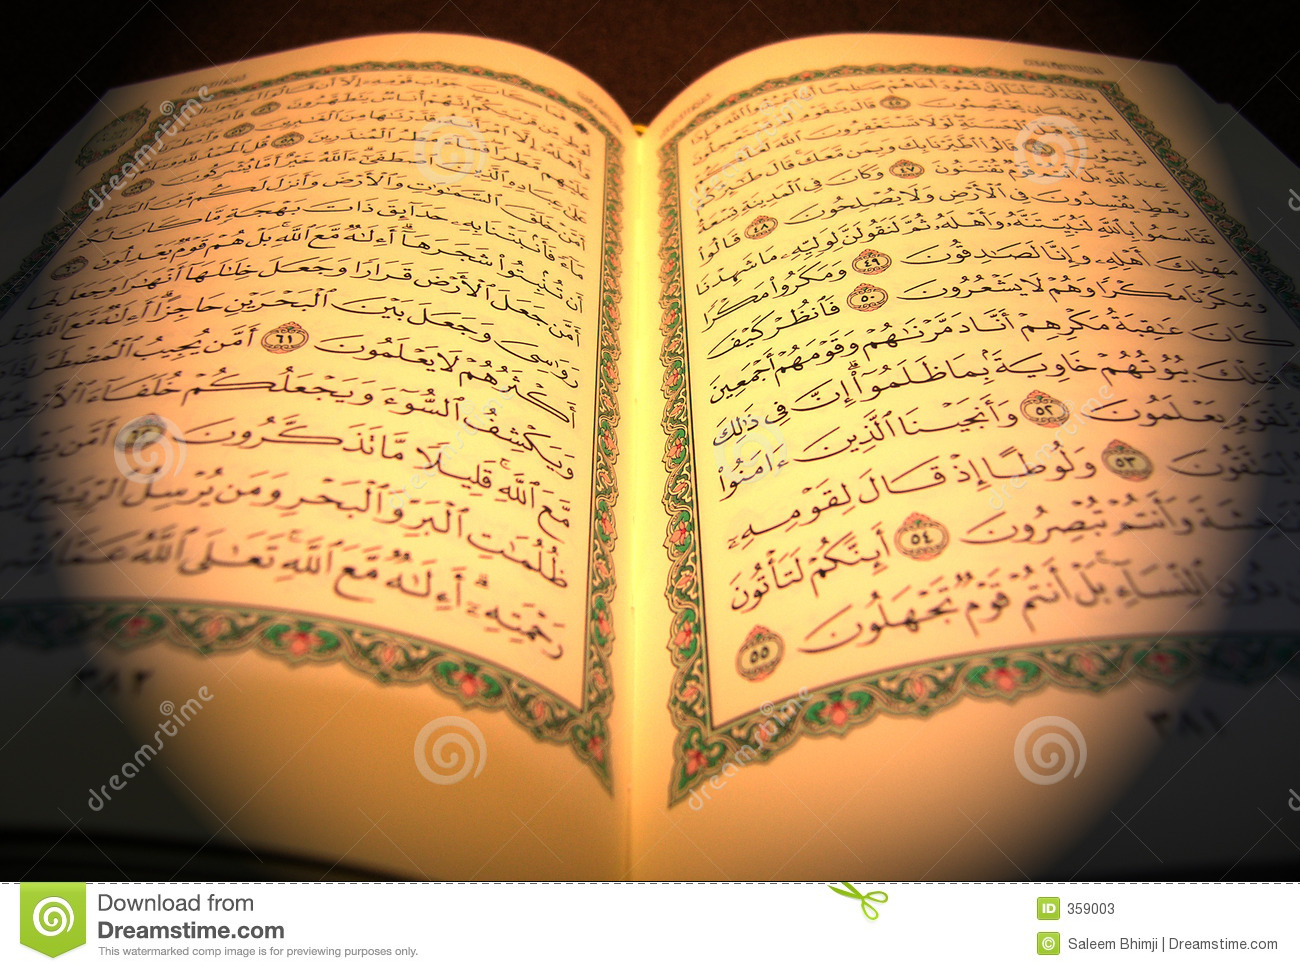 El Qur an noble